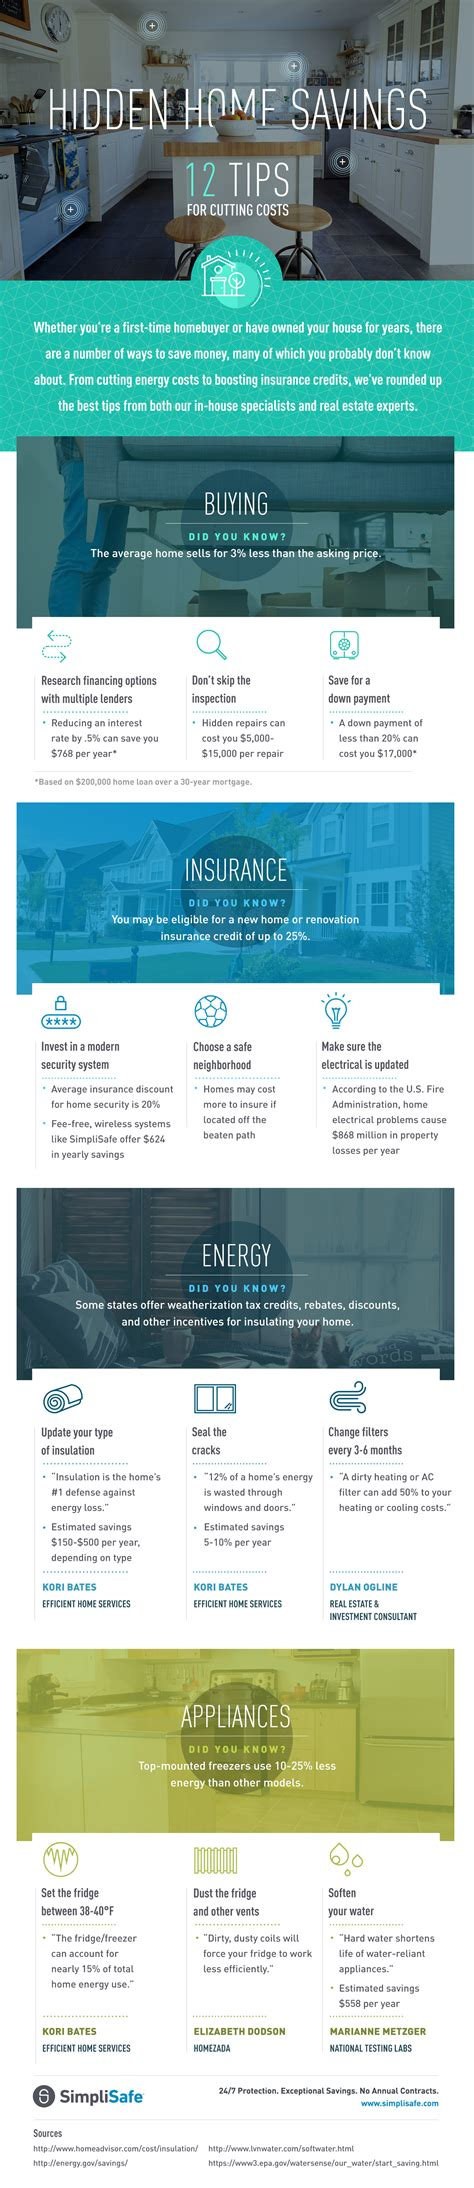 12 Tips For Cutting Costs At Home Inforgraphic  Zen Of Zada